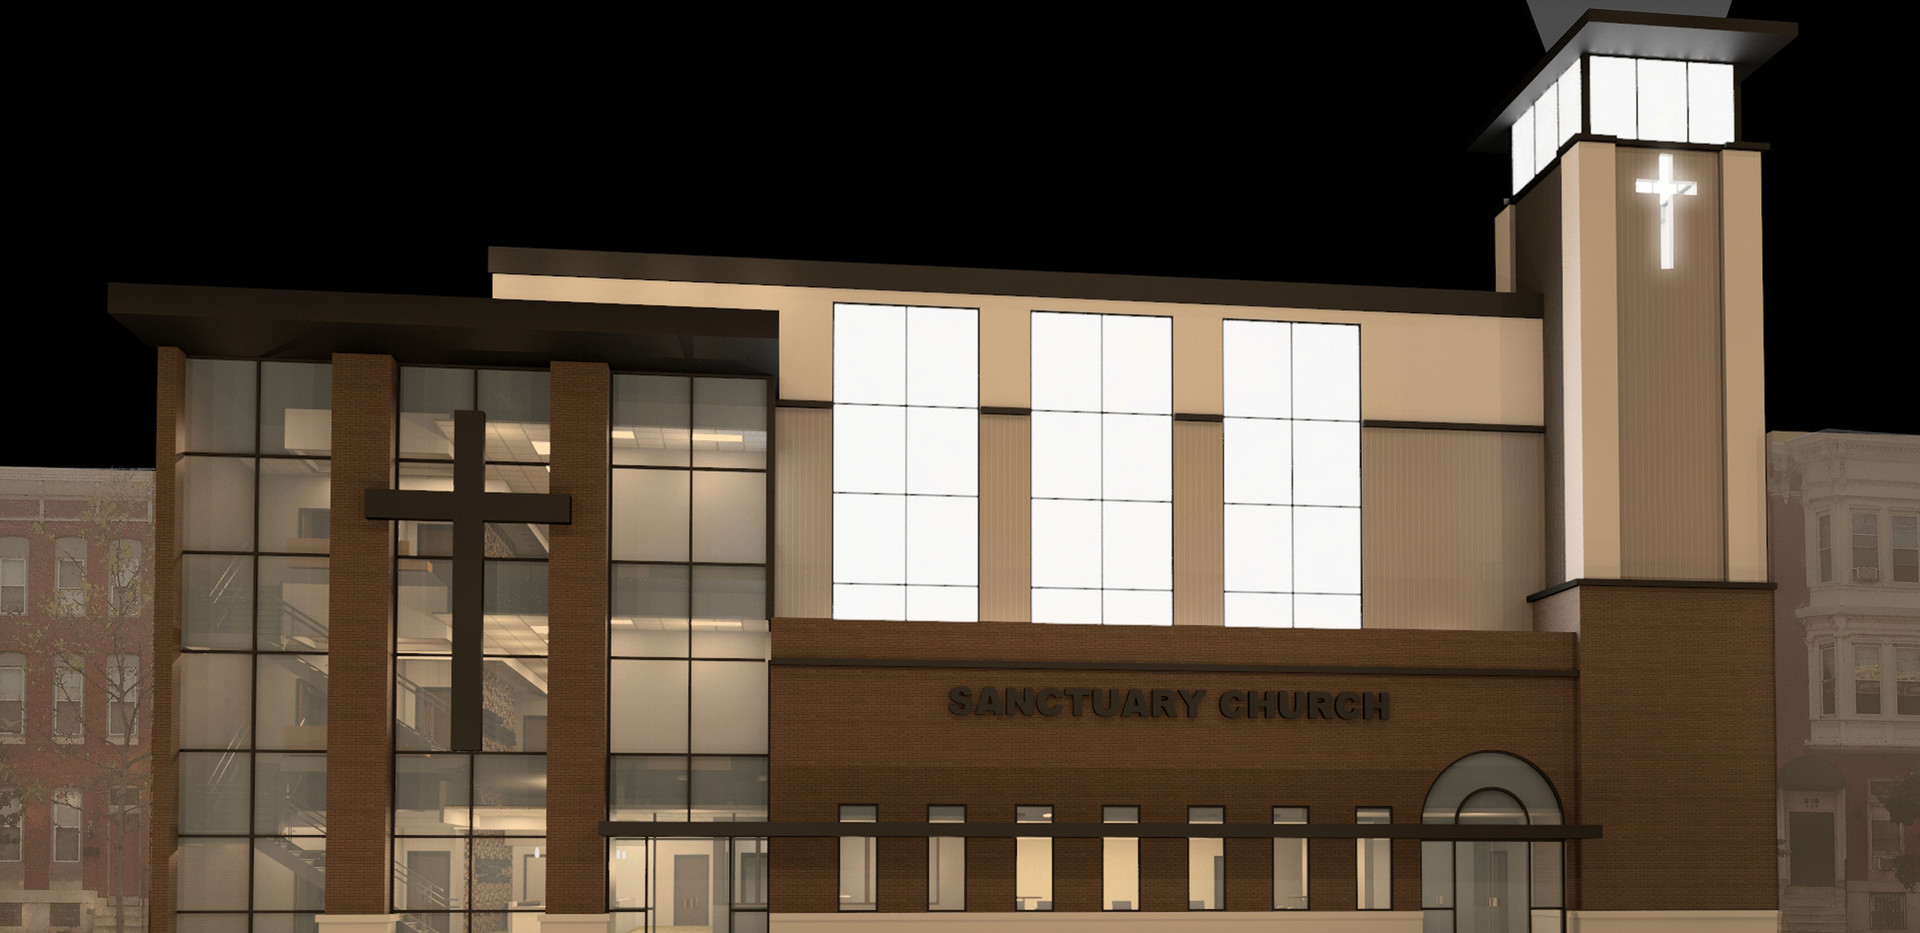 Sanctuary Church Night Time Elevation